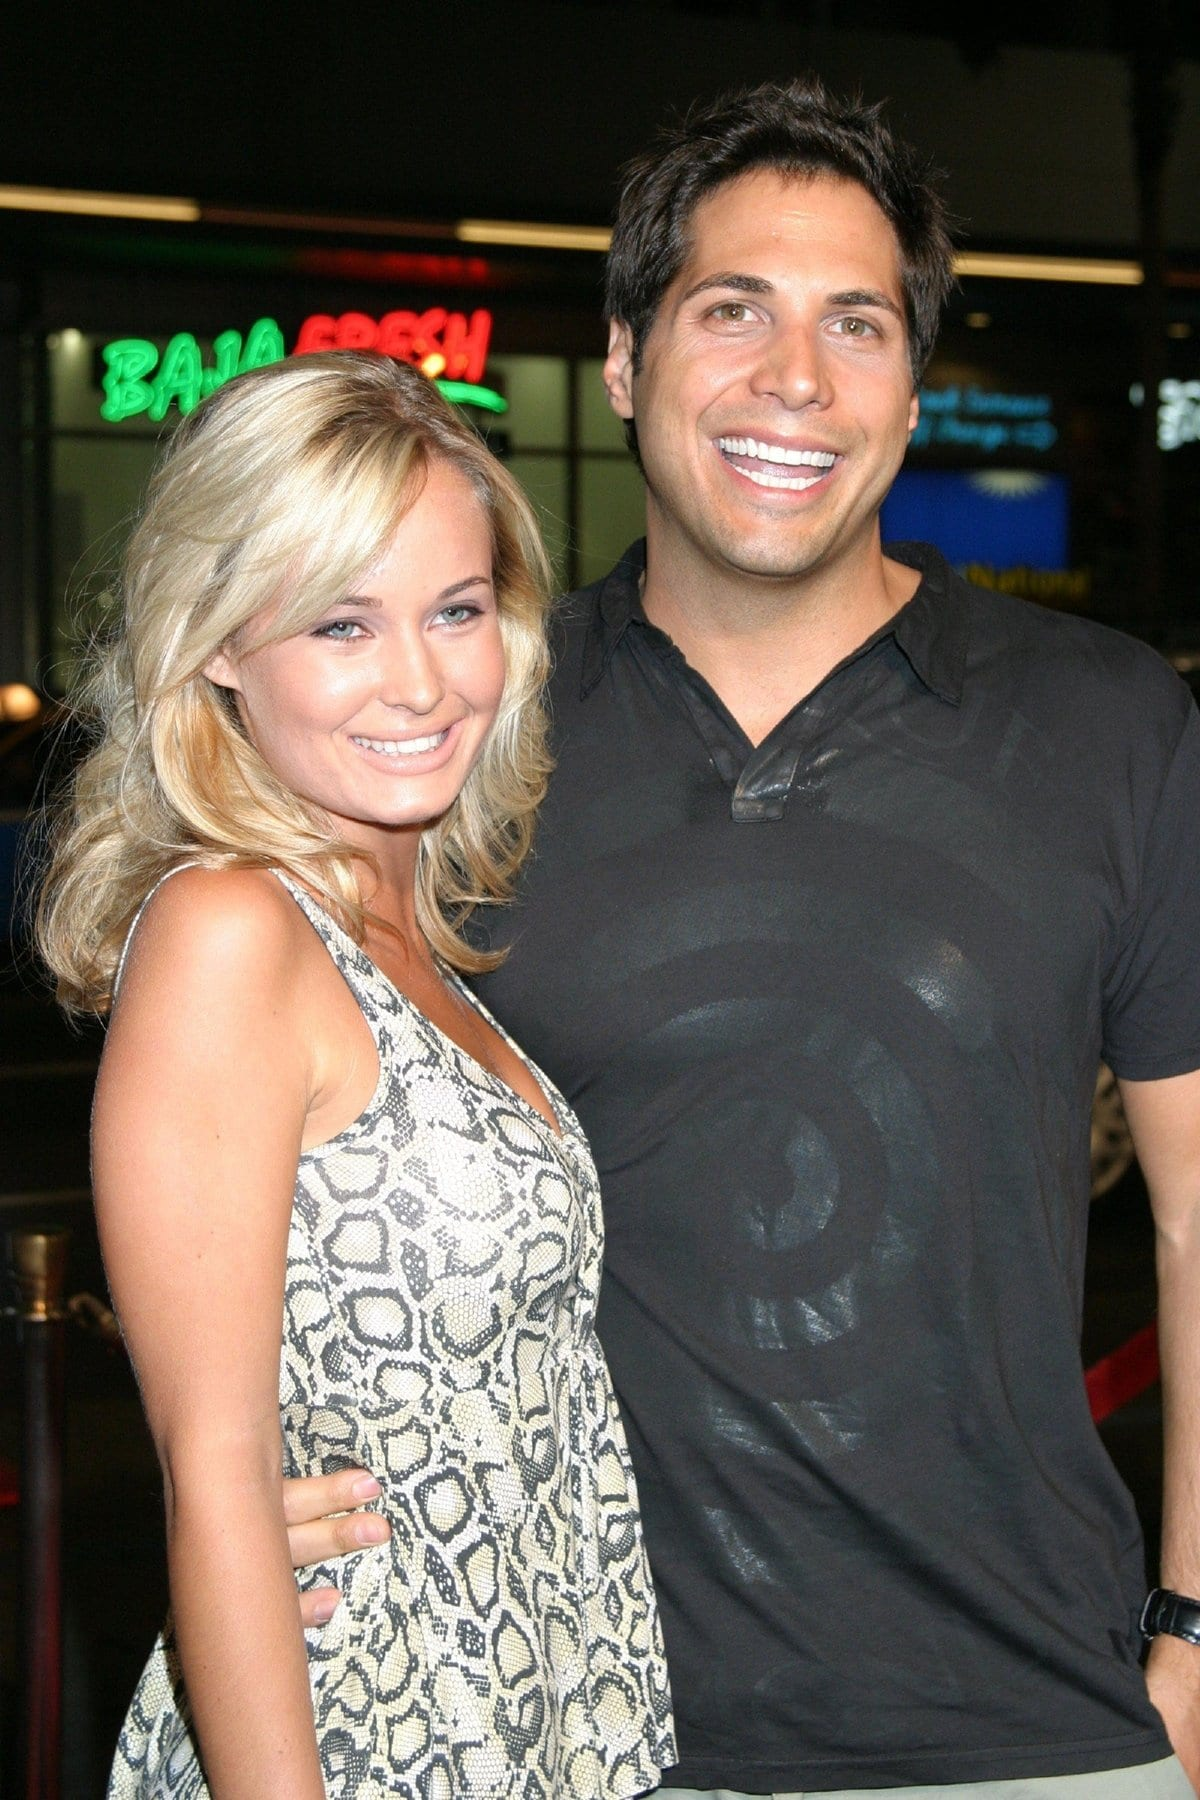 Joe Francis dated blonde actress Amber Hay from 2006 - 2008